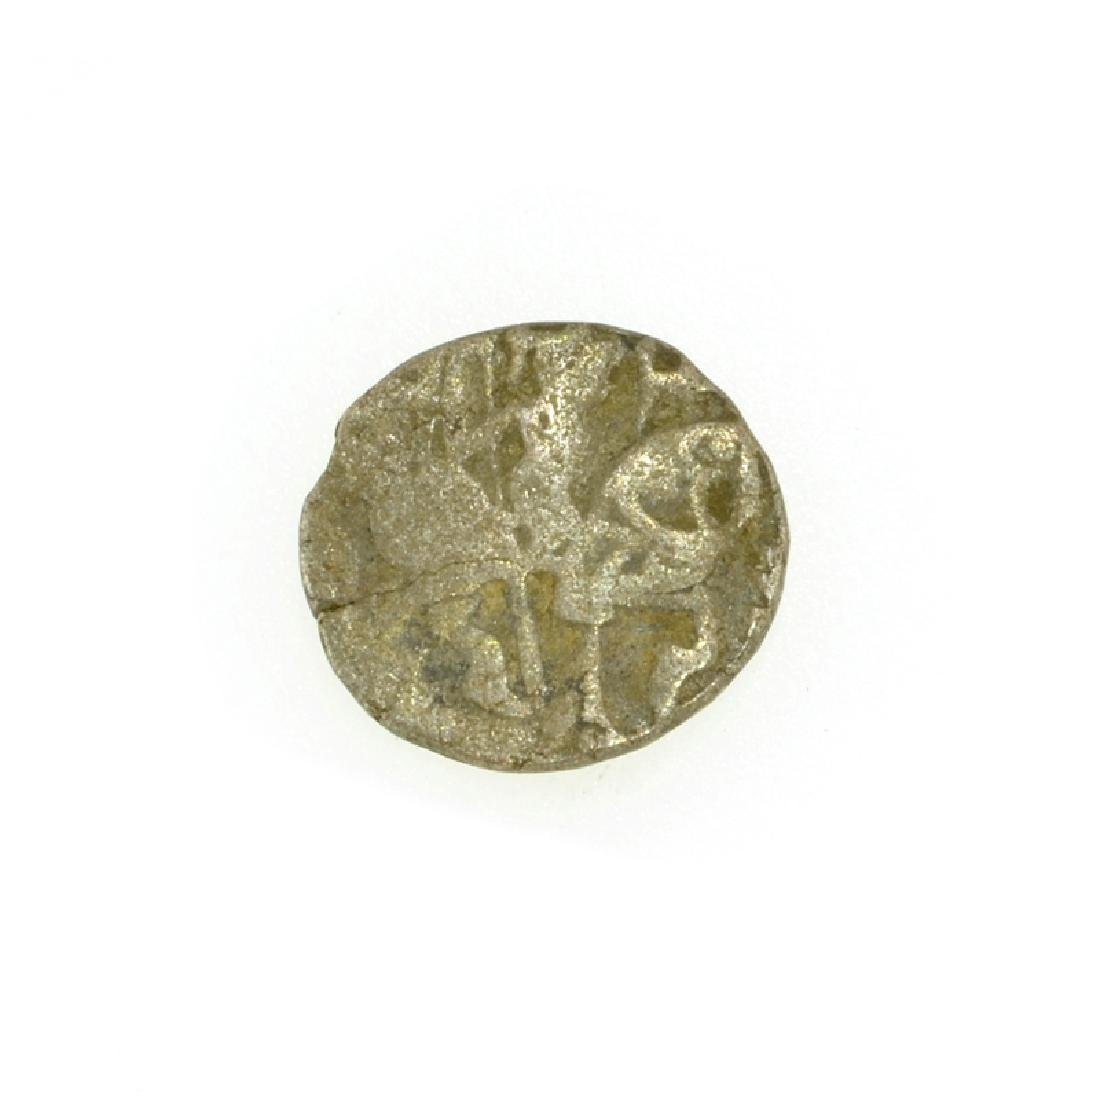 Bull And Horse Jital Circa 300 BC Coin